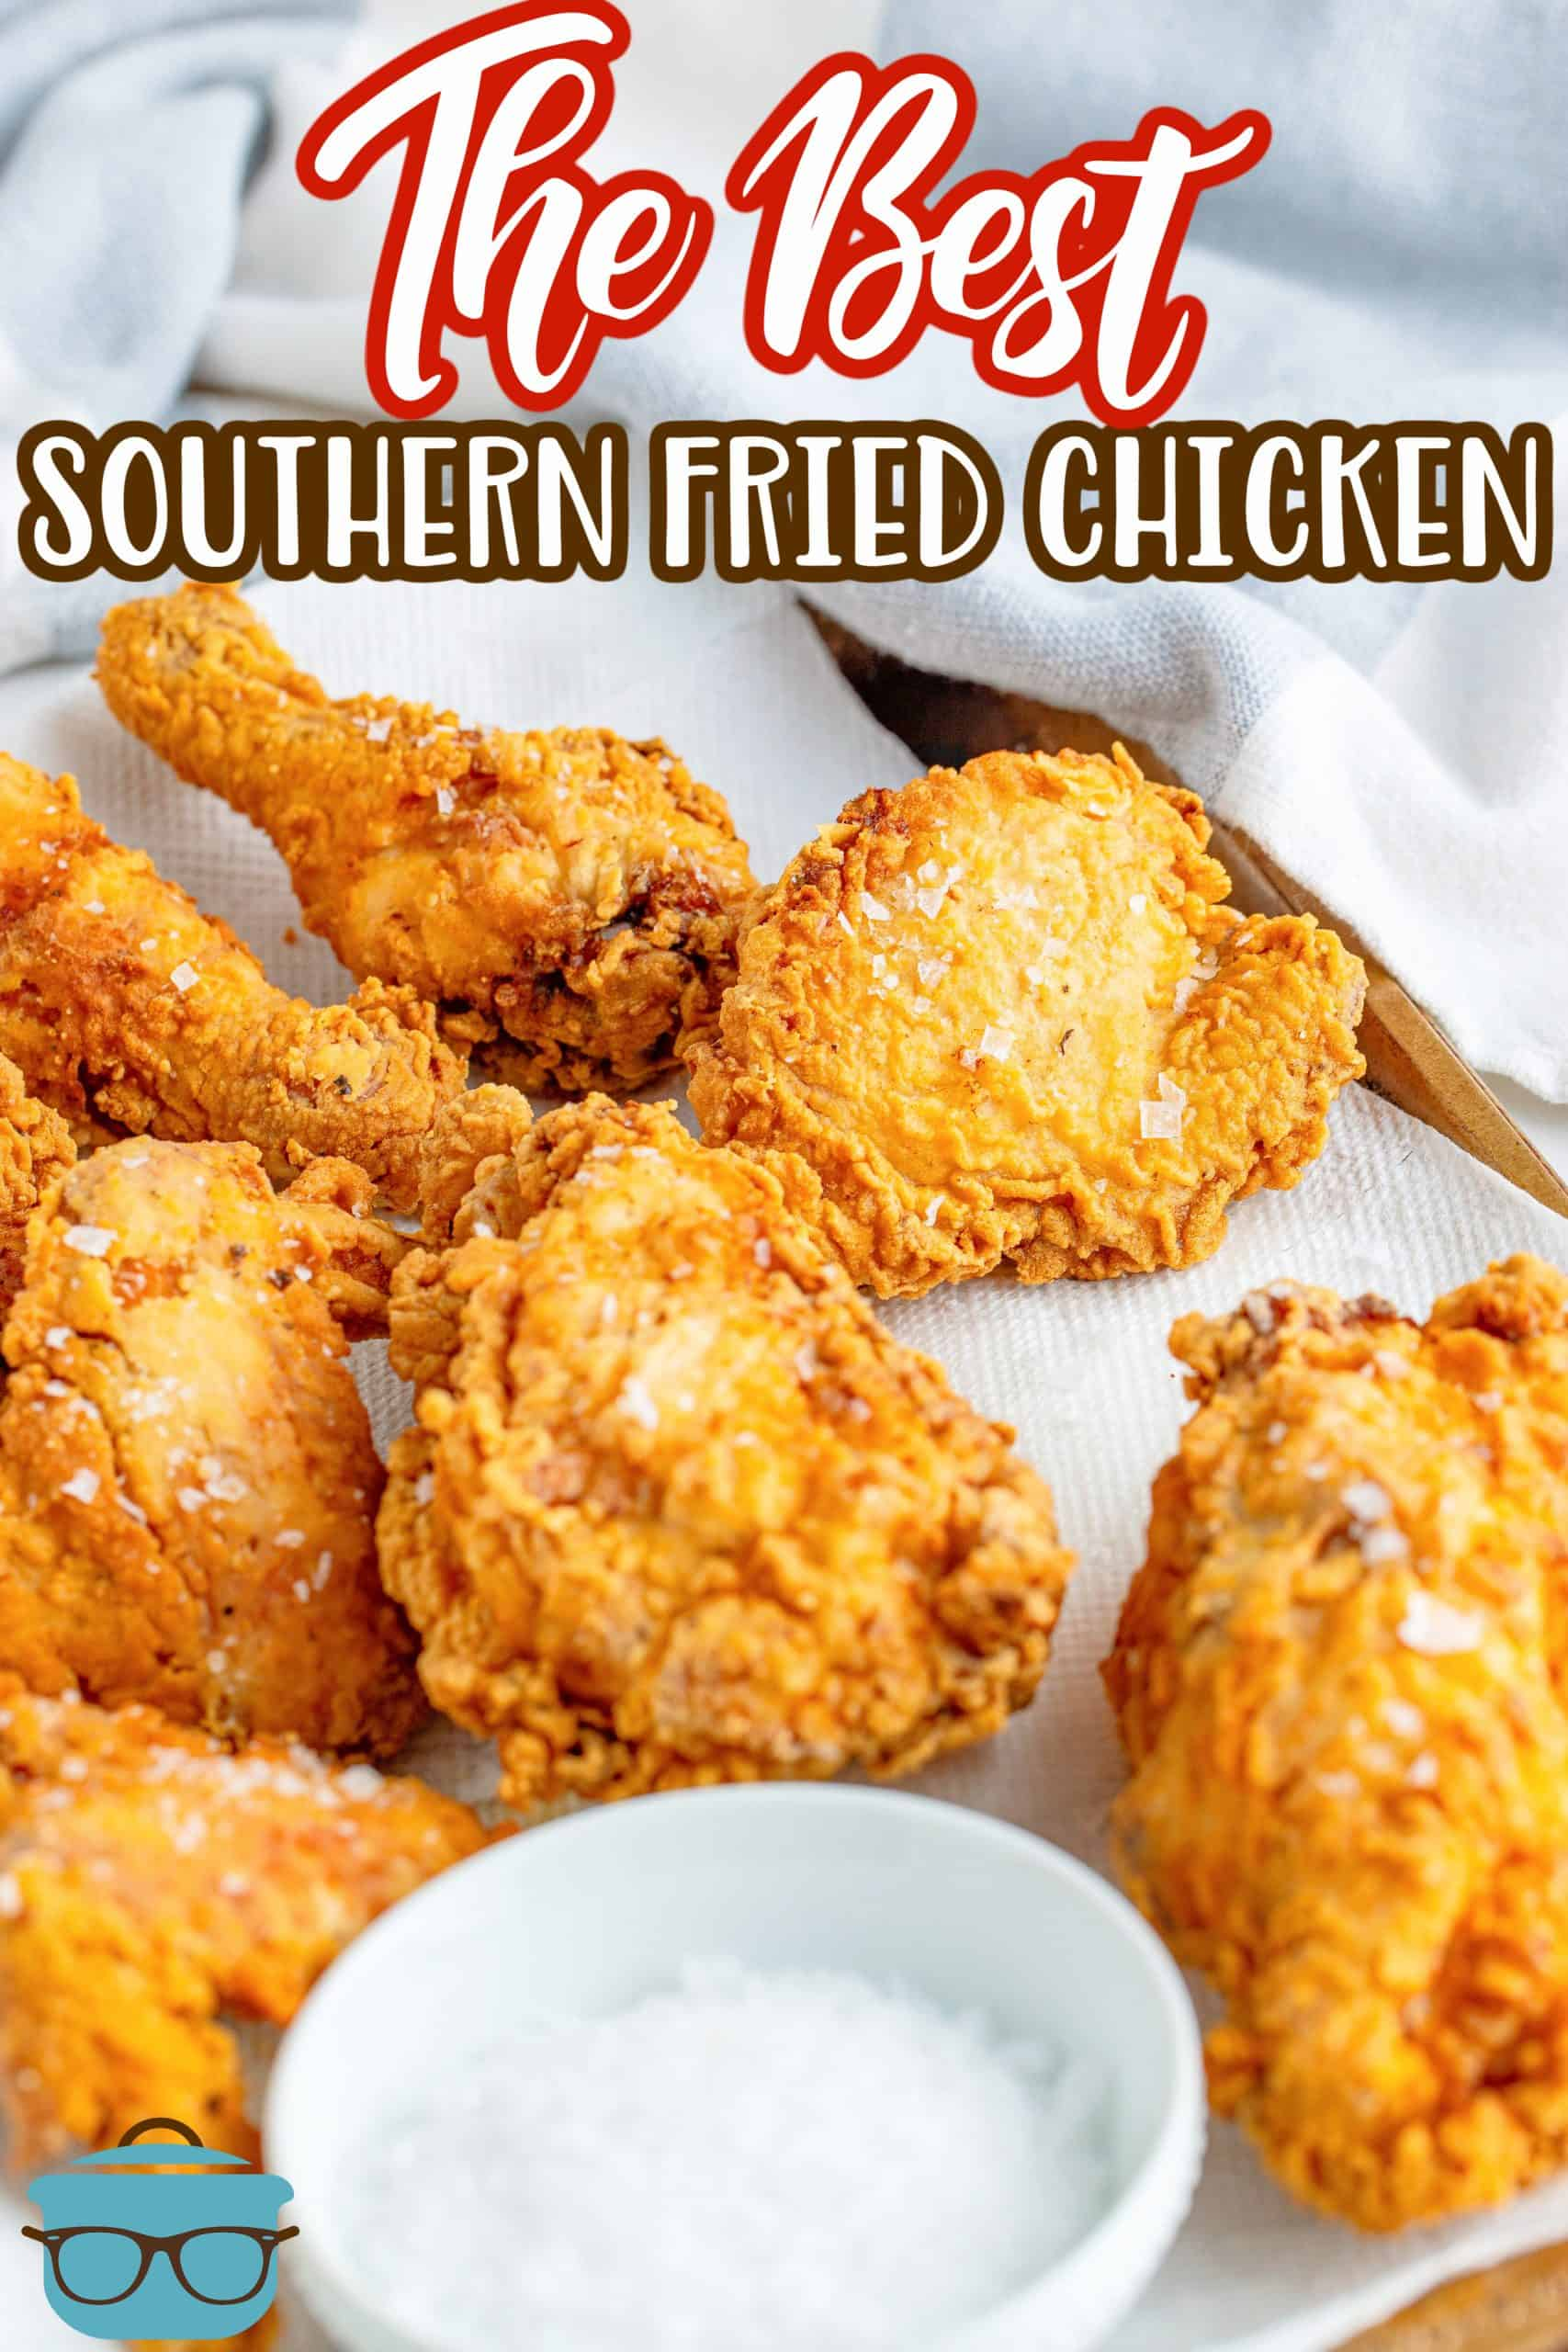 If you want a crazy delicious dinner time recipe, then you have to go for The Best Southern Fried Chicken. Crispy, flavorful and absolutely addictive.